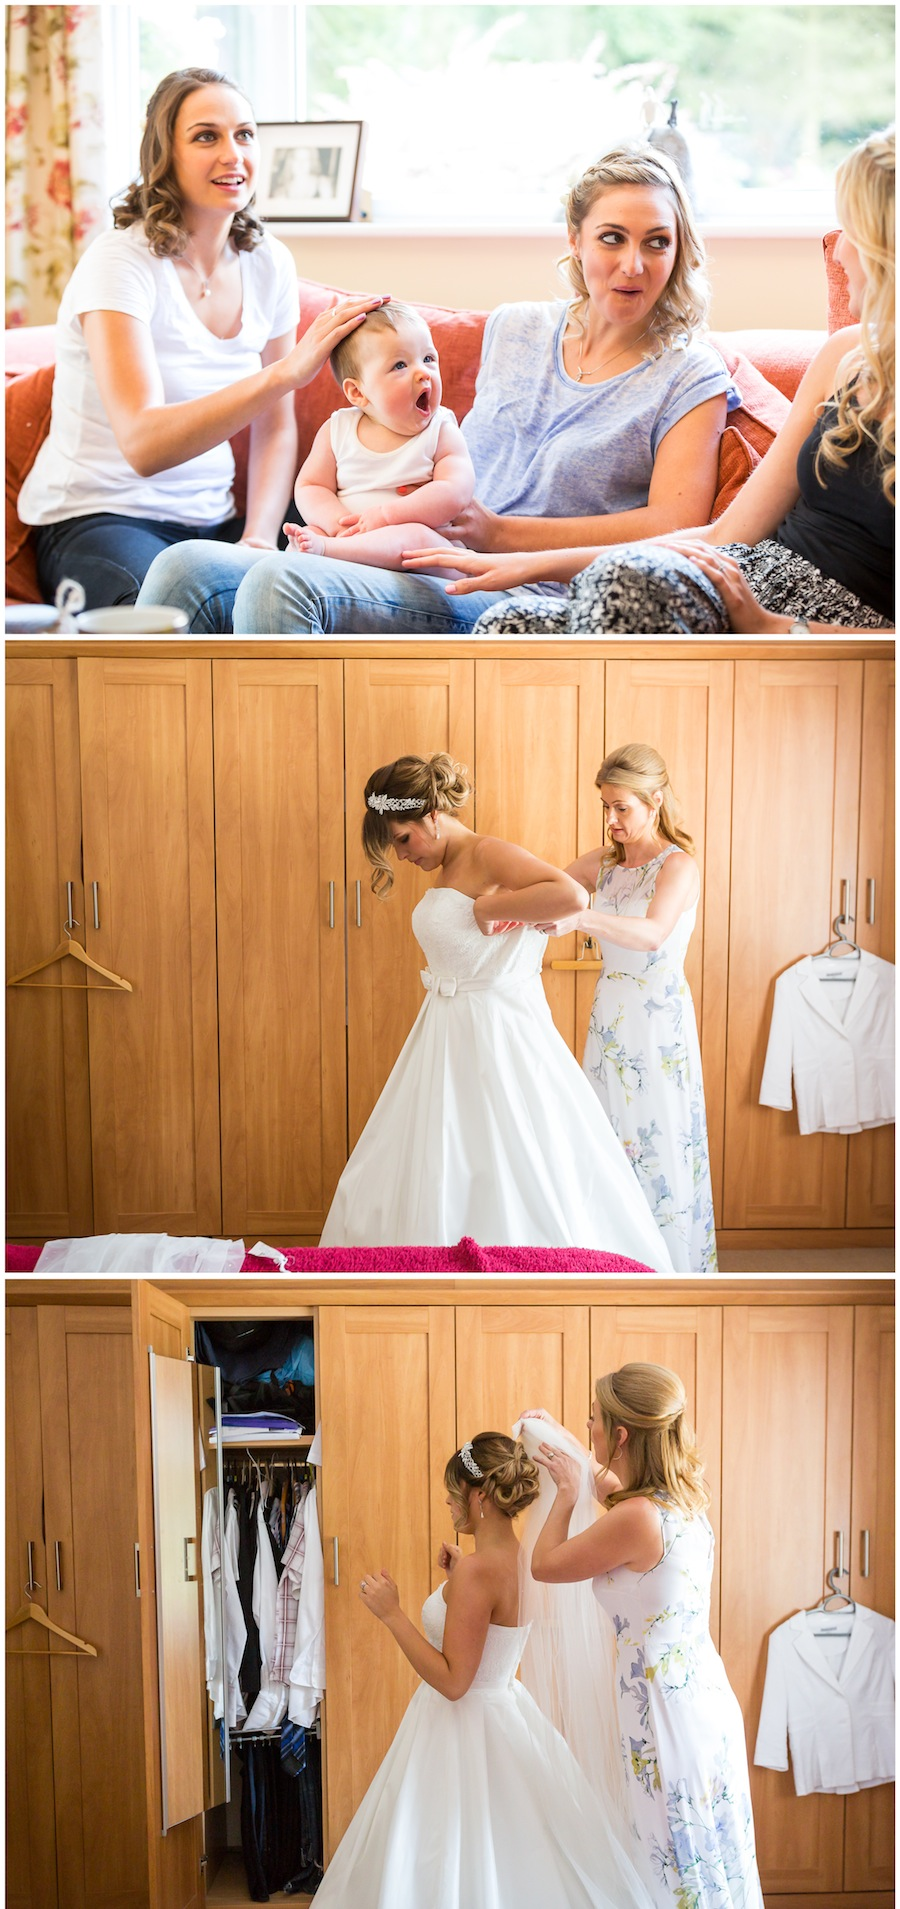 Wedding Photography Charing